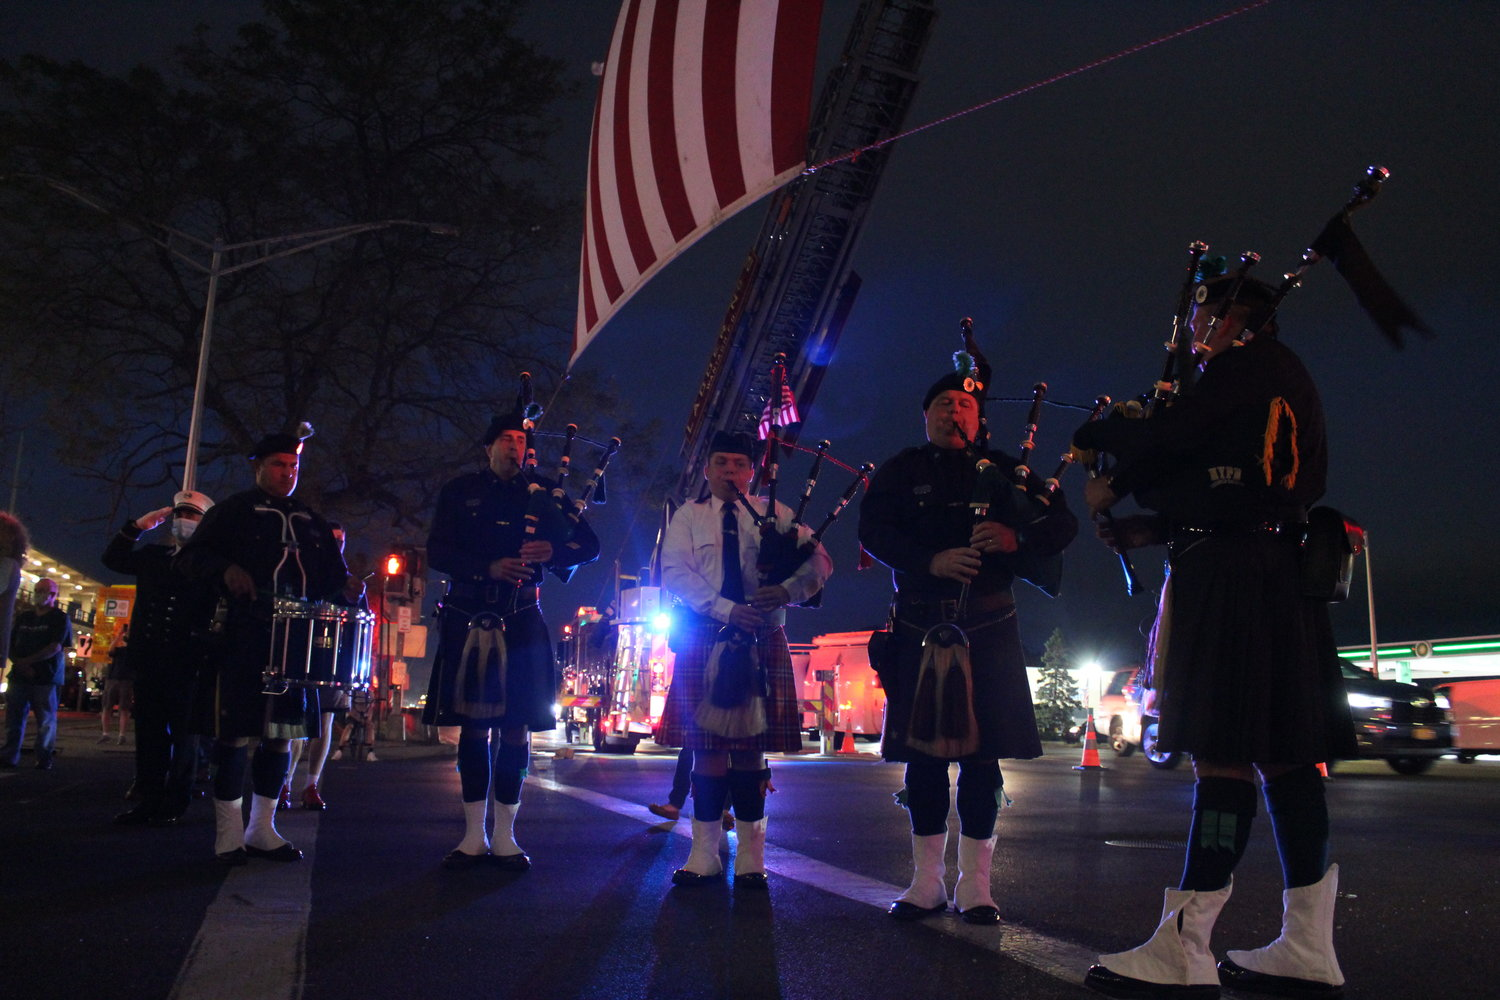 The rousing sound of bagpipes — played by members of NYPD's Pipe Band — sounded across the ceremony.